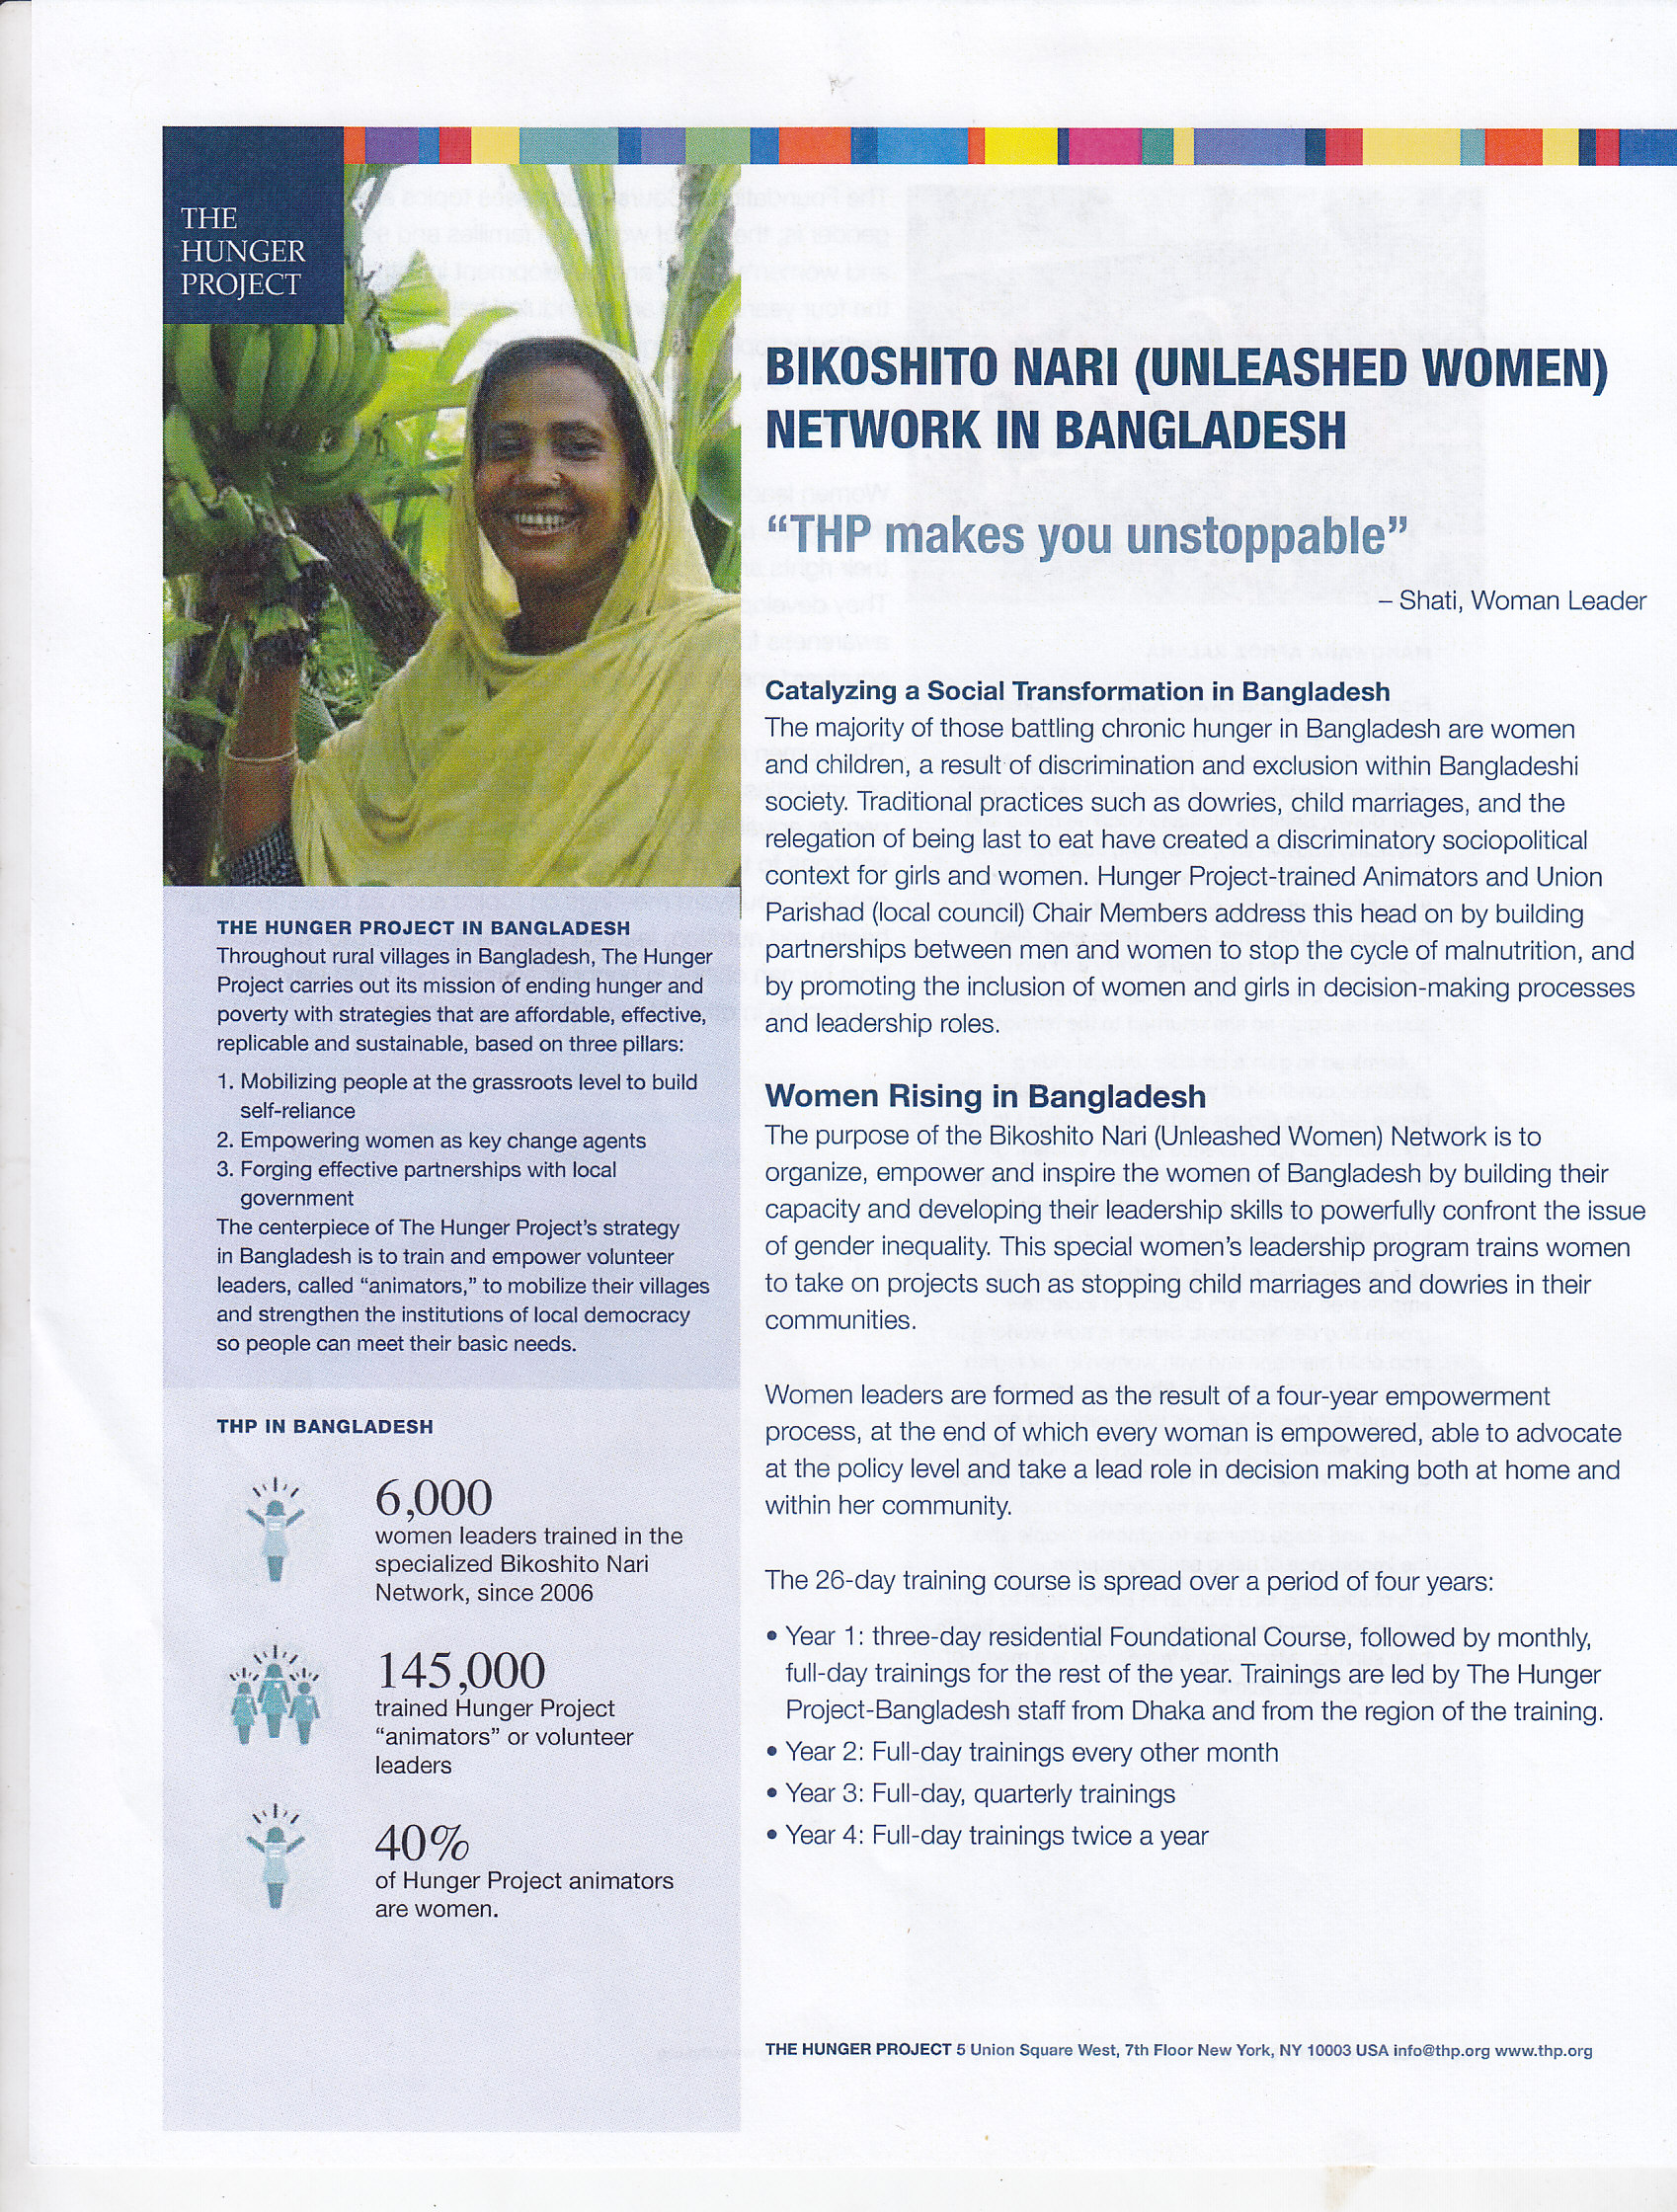 BIKOSHITO NARI (UNLEASHED WOMEN) NETWORK IN BANGLADESH